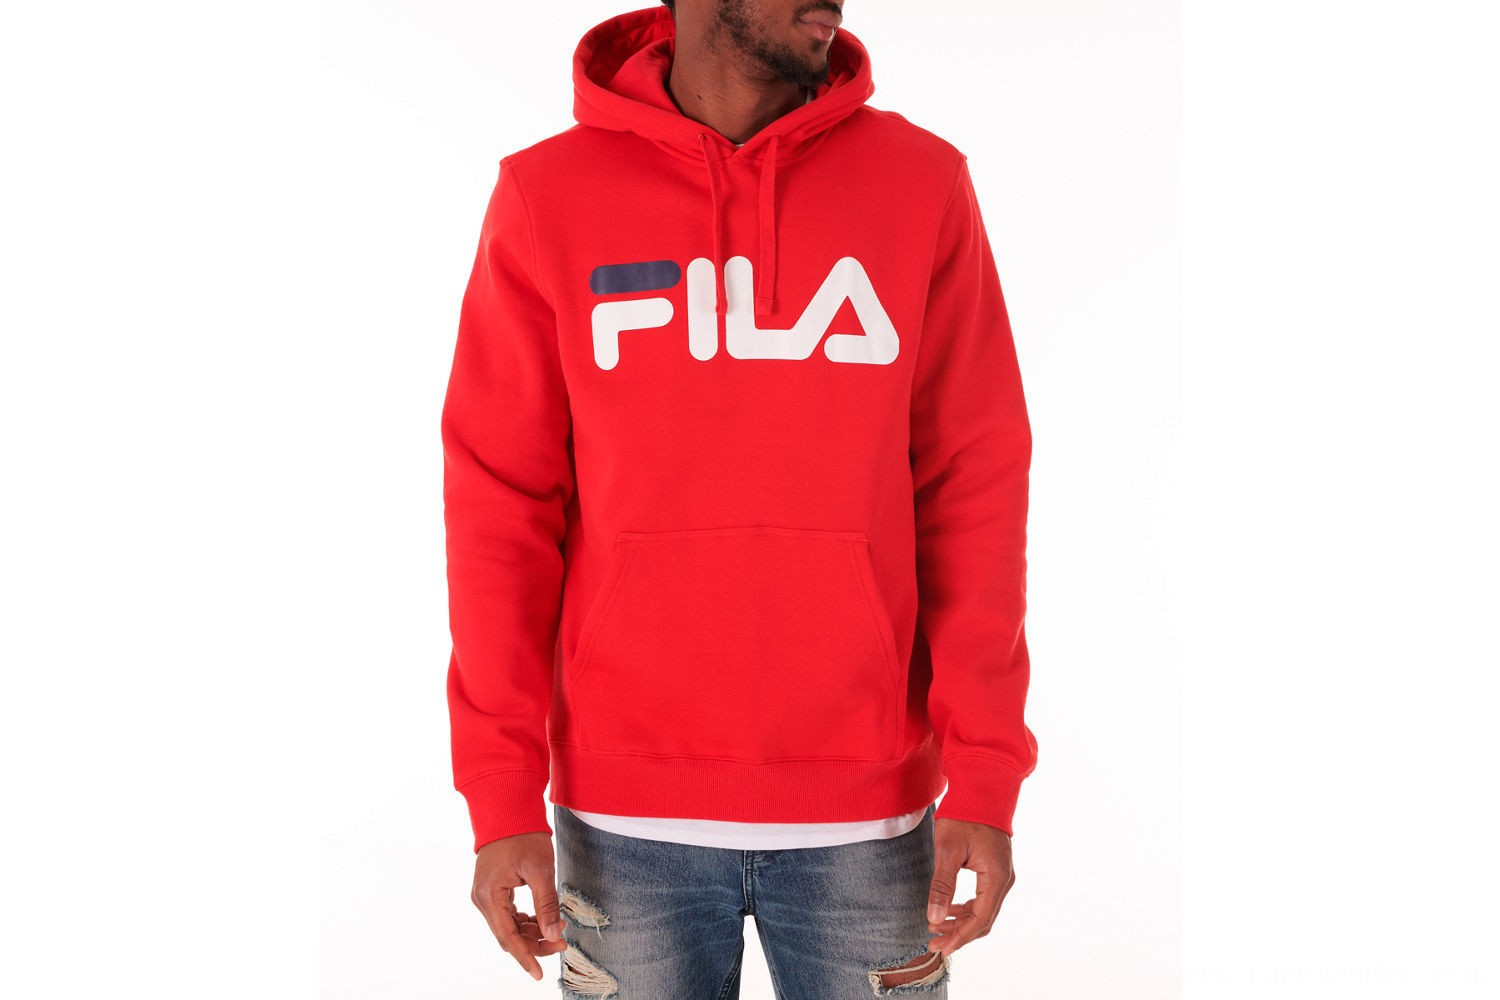 Fila Men's Fiori Pullover Hoodie - Red/White/Navy